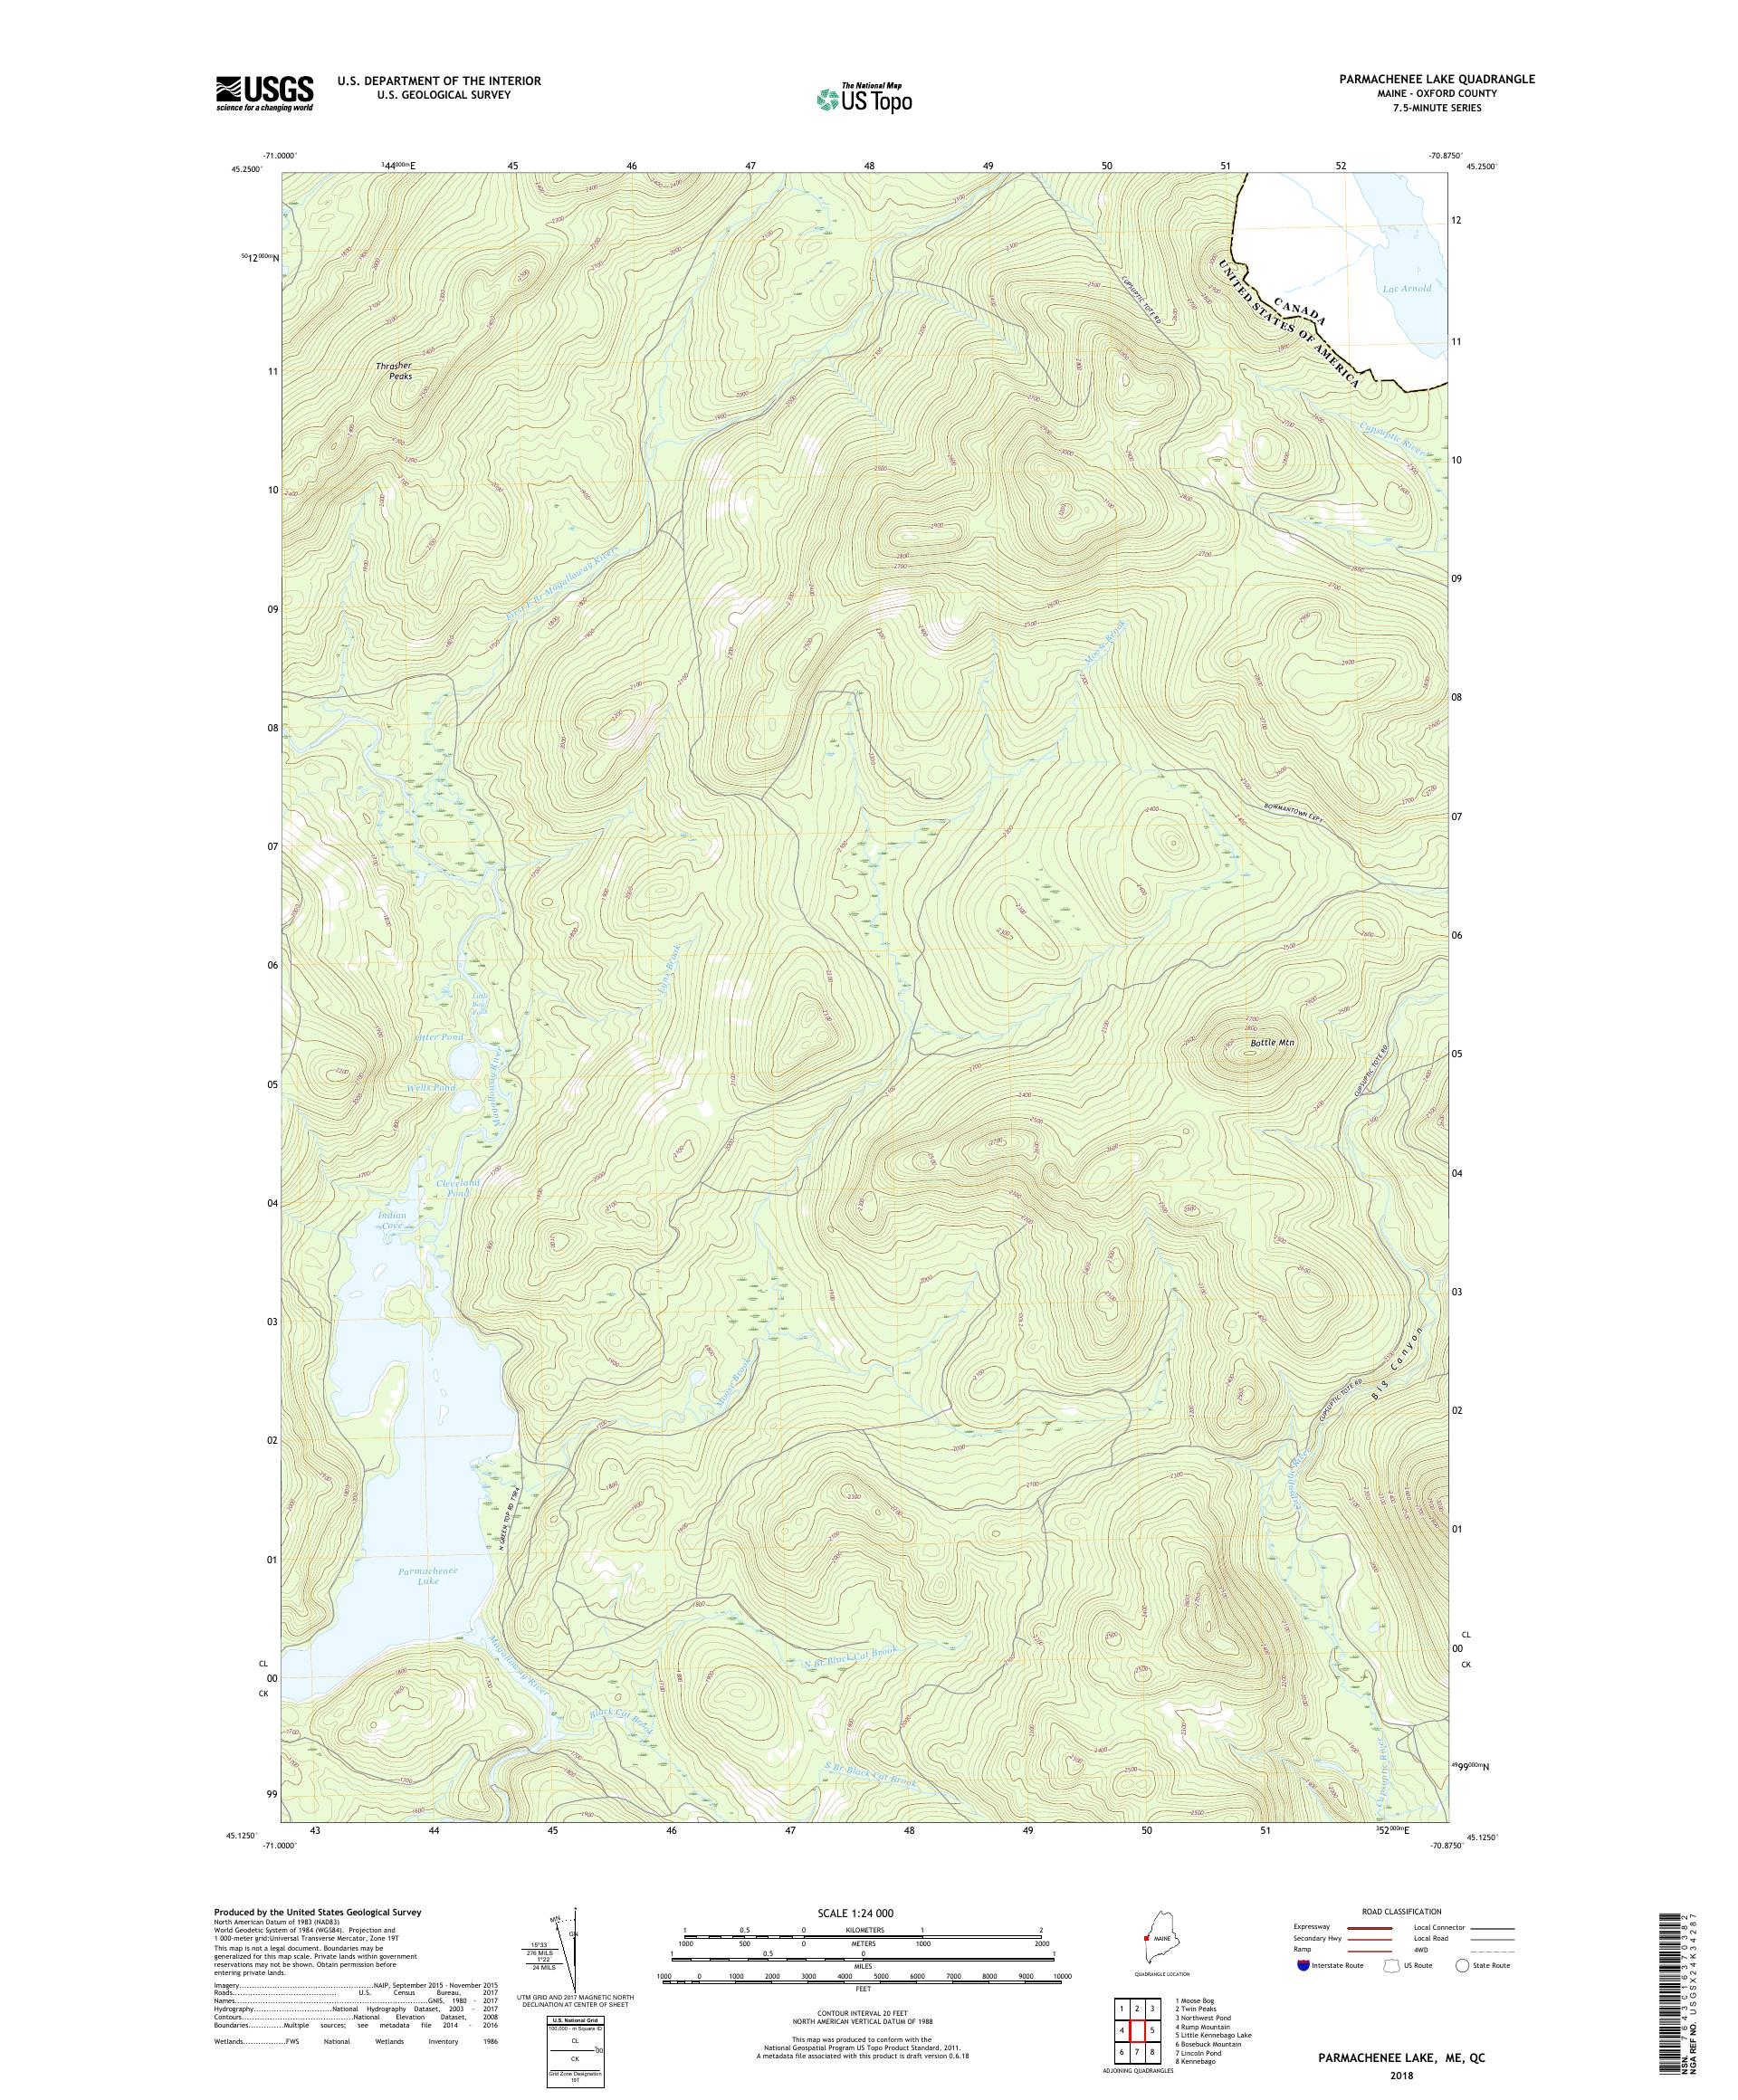 MyTopo Parmachenee Lake, Maine USGS Quad Topo Map on map of masardis me, map of west va mountains, map of mountains in south dakota, map of eastern oregon mountains, map of white mountain region, map of juneau mountains, map of penn's woods, us map of mountains, map of nevada mountains, map of england mountains, map of asir mountains, map of california's mountains, map of north conway nh area, map of united states and canada border, map of middle east mountains, map of the rockies mountains, map of land between the lakes, map of port of portland me, map of mountains in virginia, map of colorado mountains,